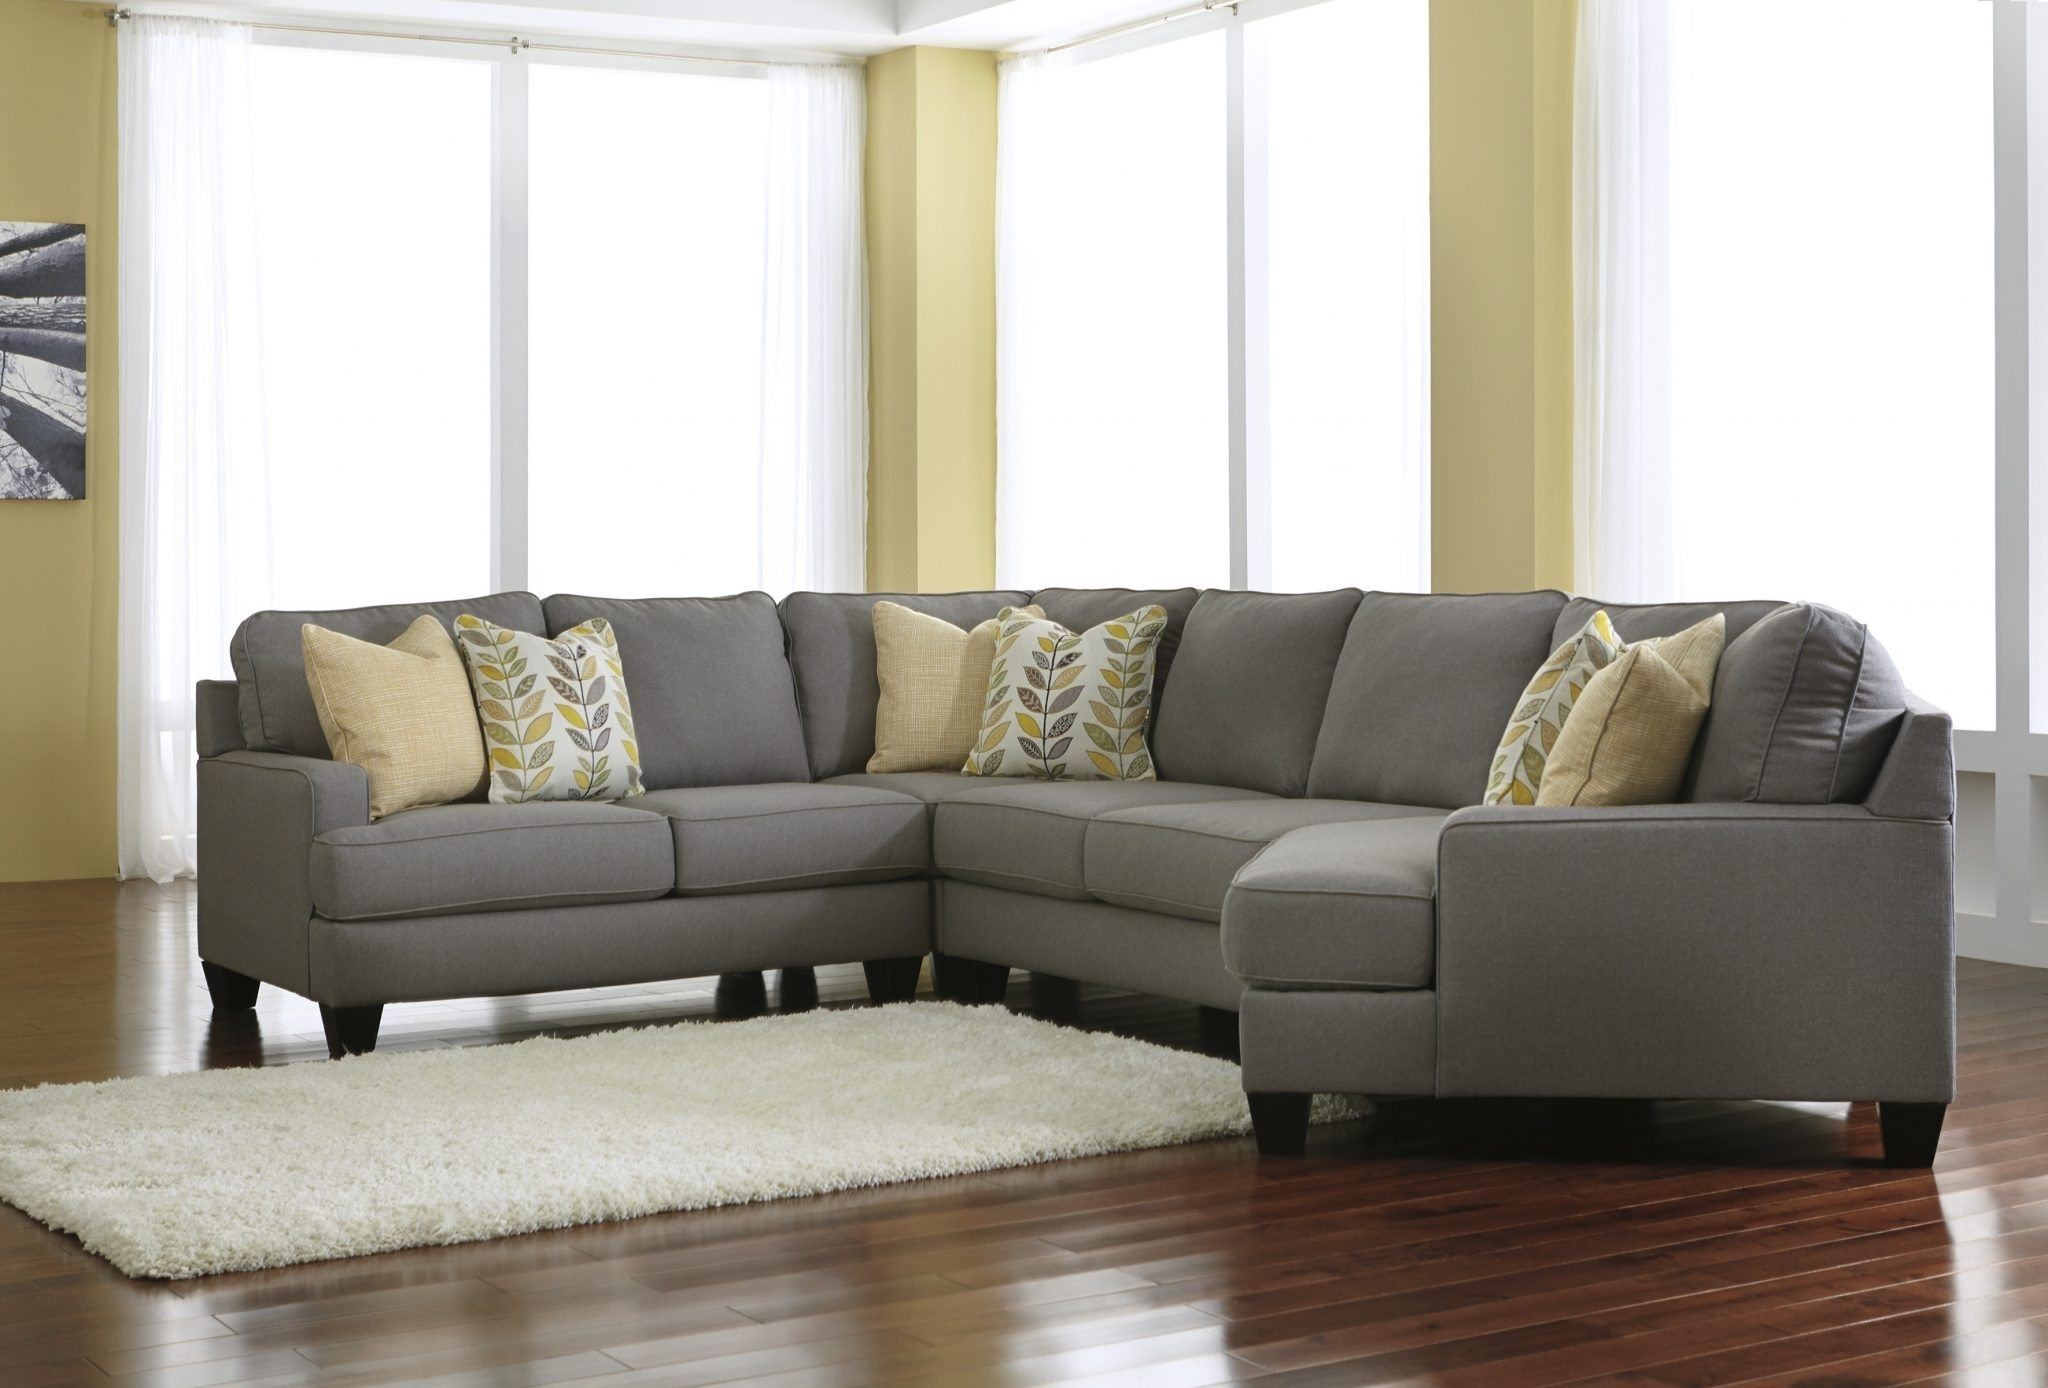 Best Furniture Mentor Oh: Furniture Store – Ashley Furniture Dealer Intended For Ventura County Sectional Sofas (Image 8 of 10)